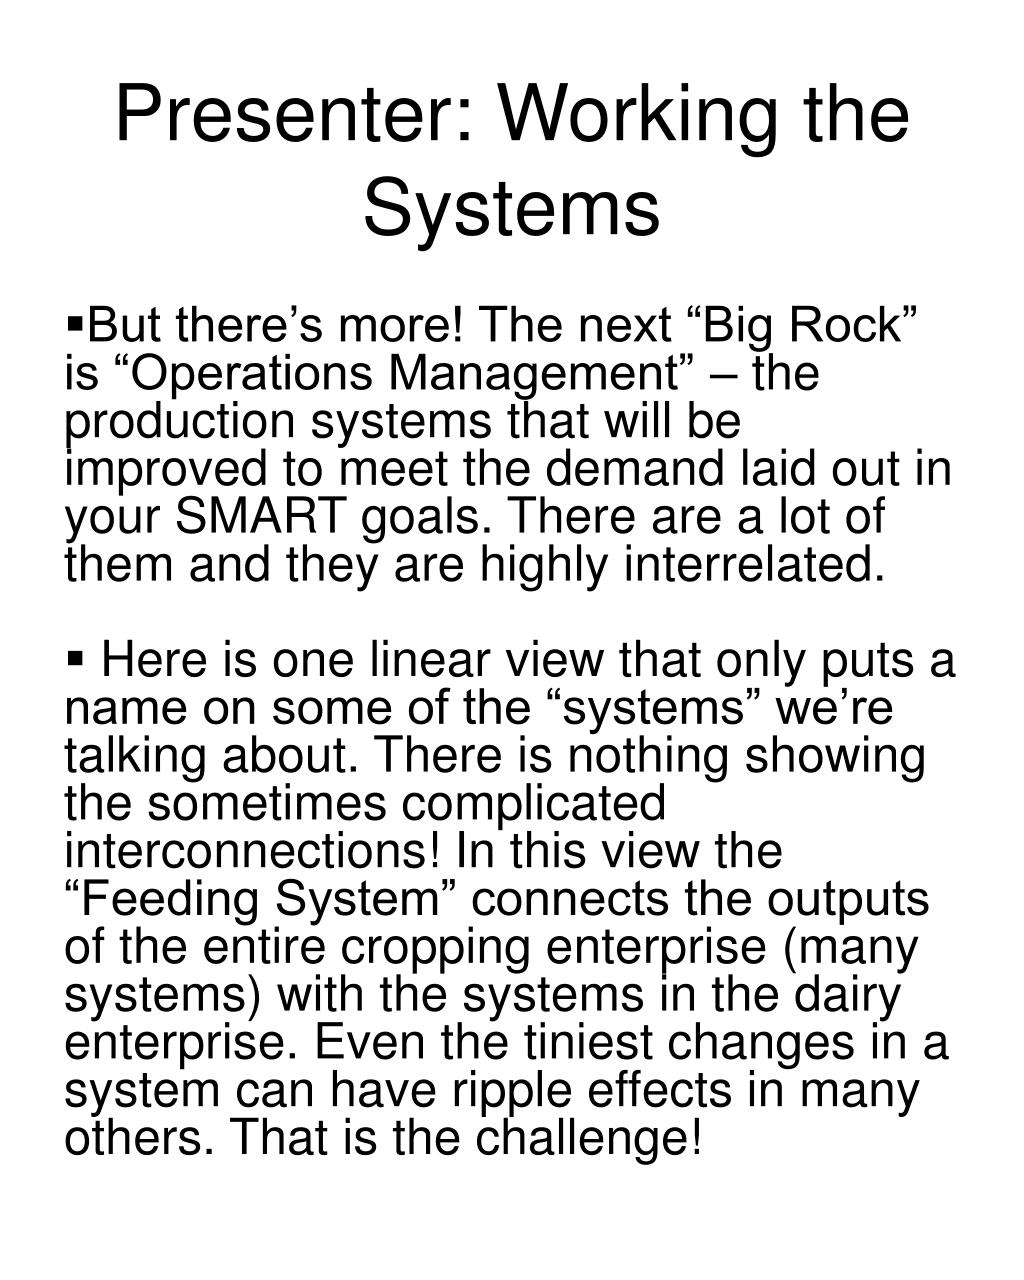 Presenter: Working the Systems